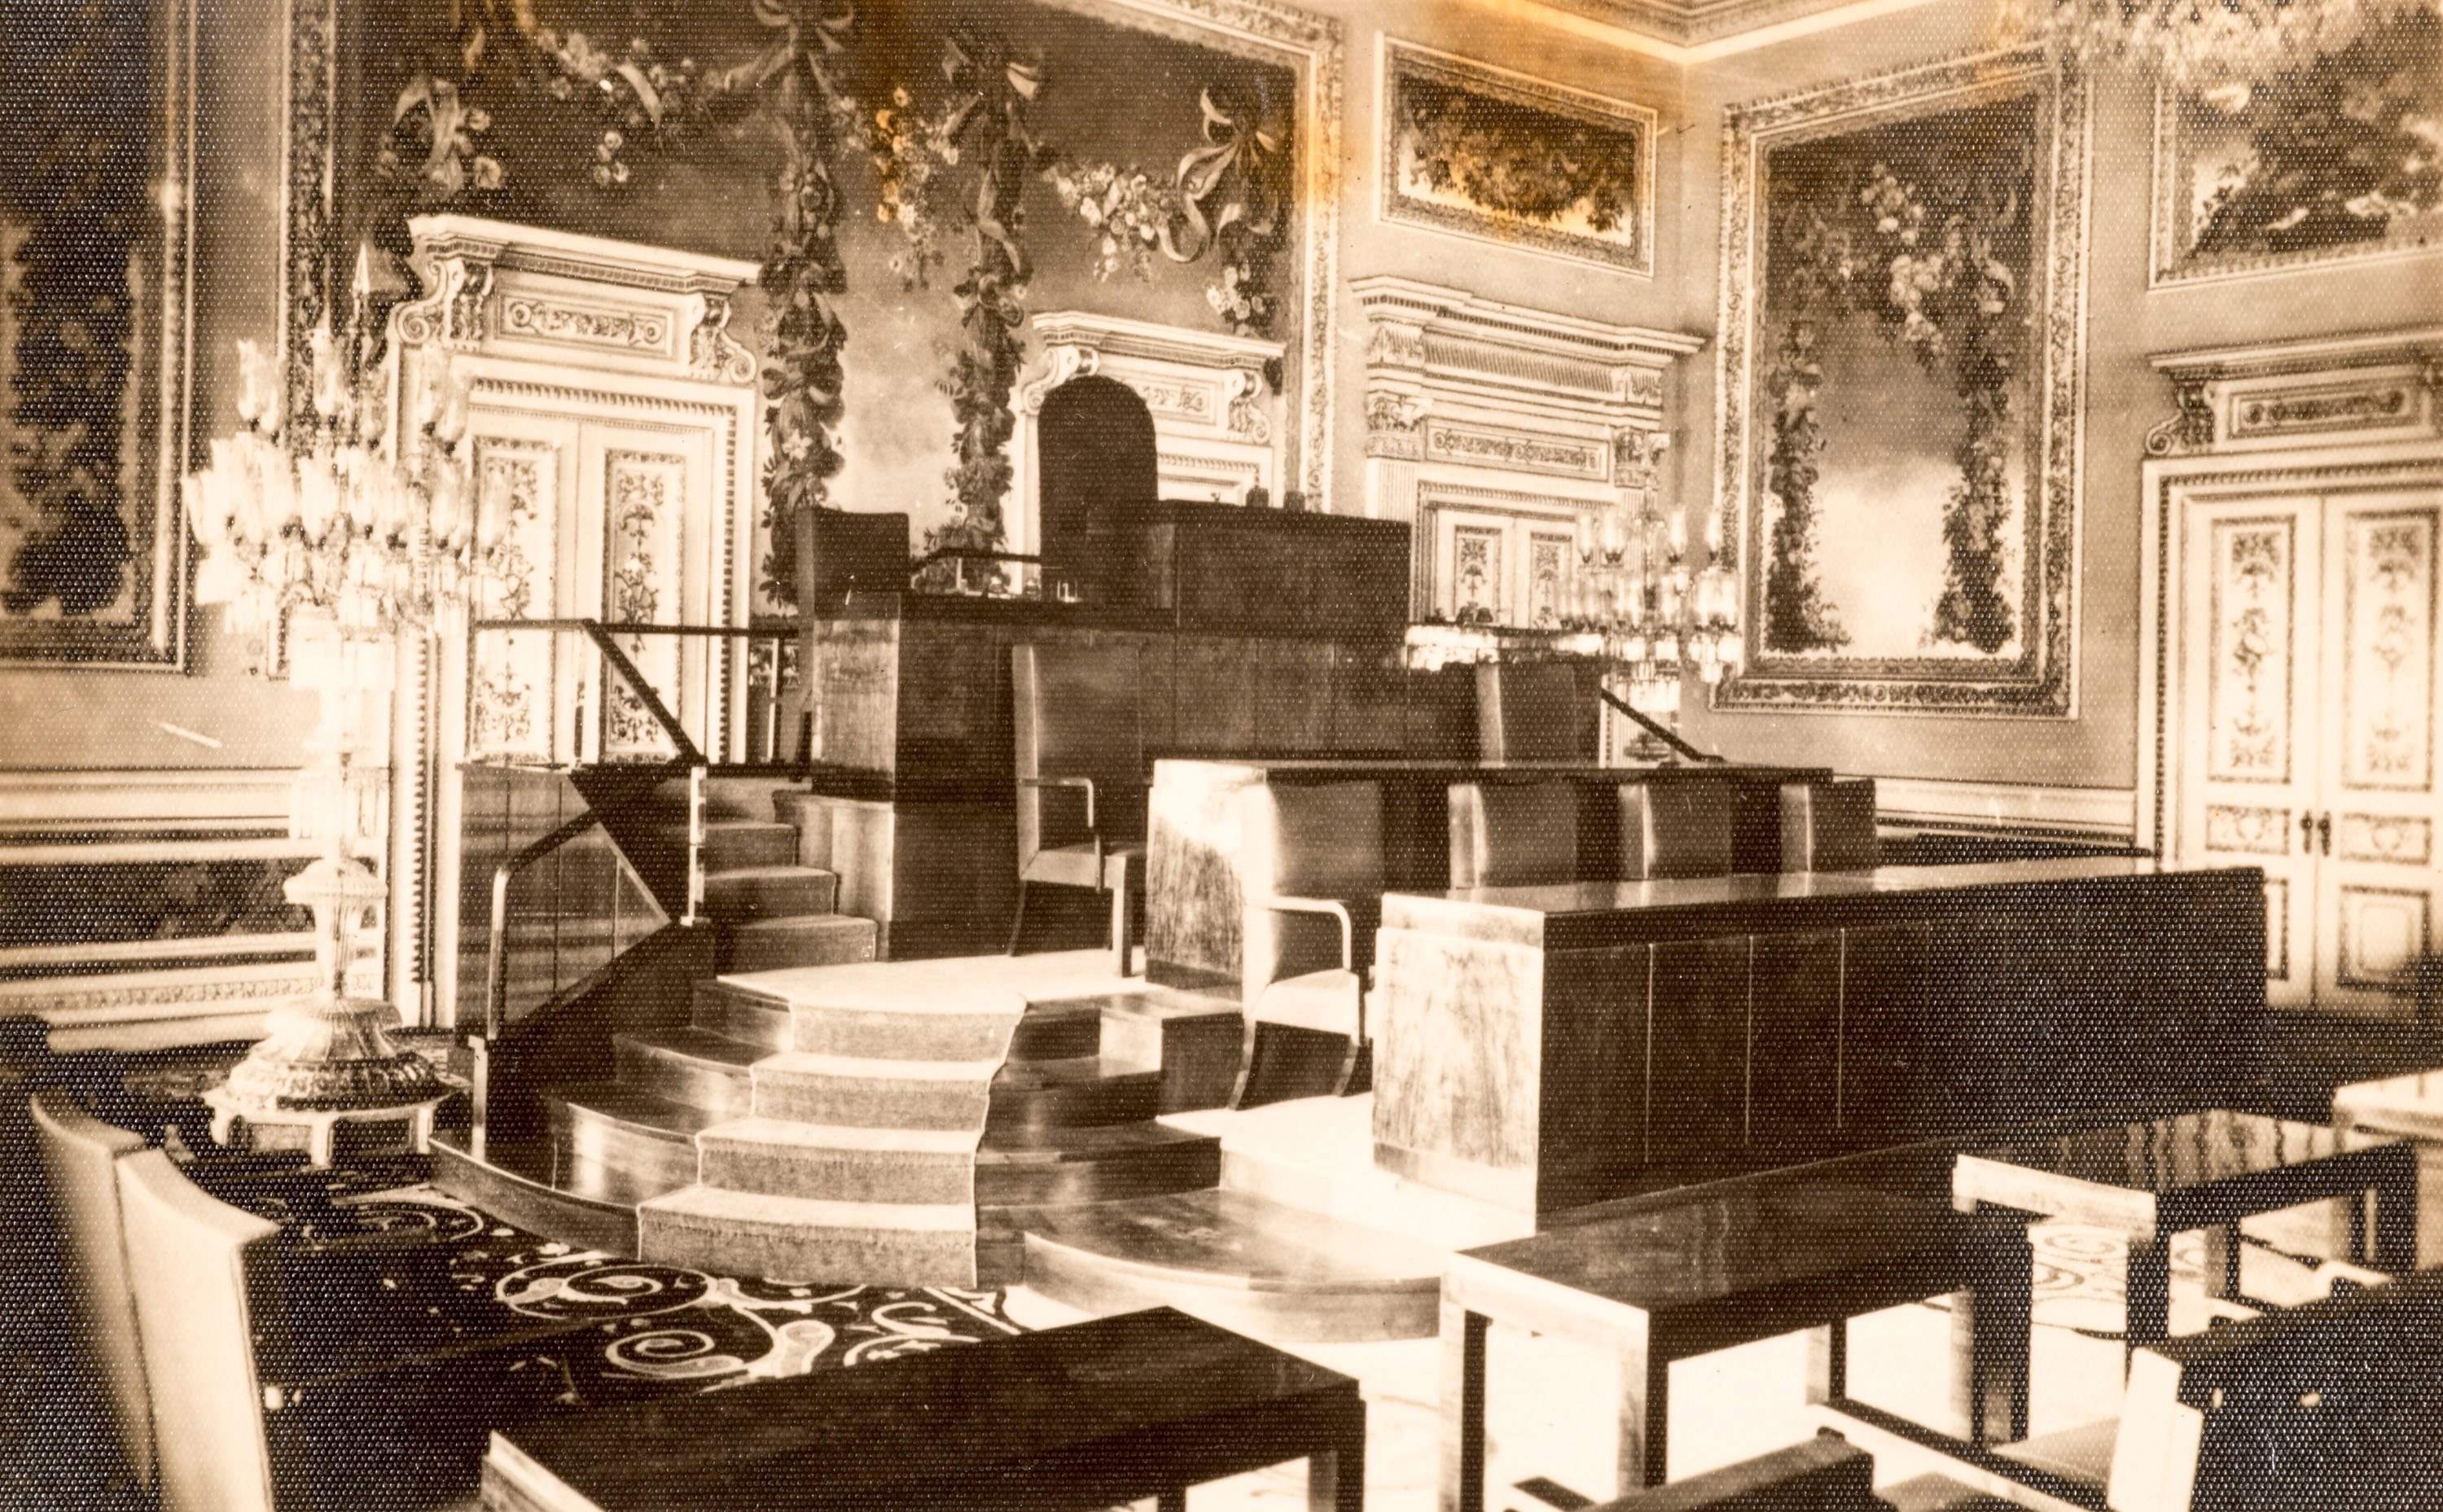 The furniture designed by Yenal for the Balkan Conference at the Yıldız Palace in 1931.